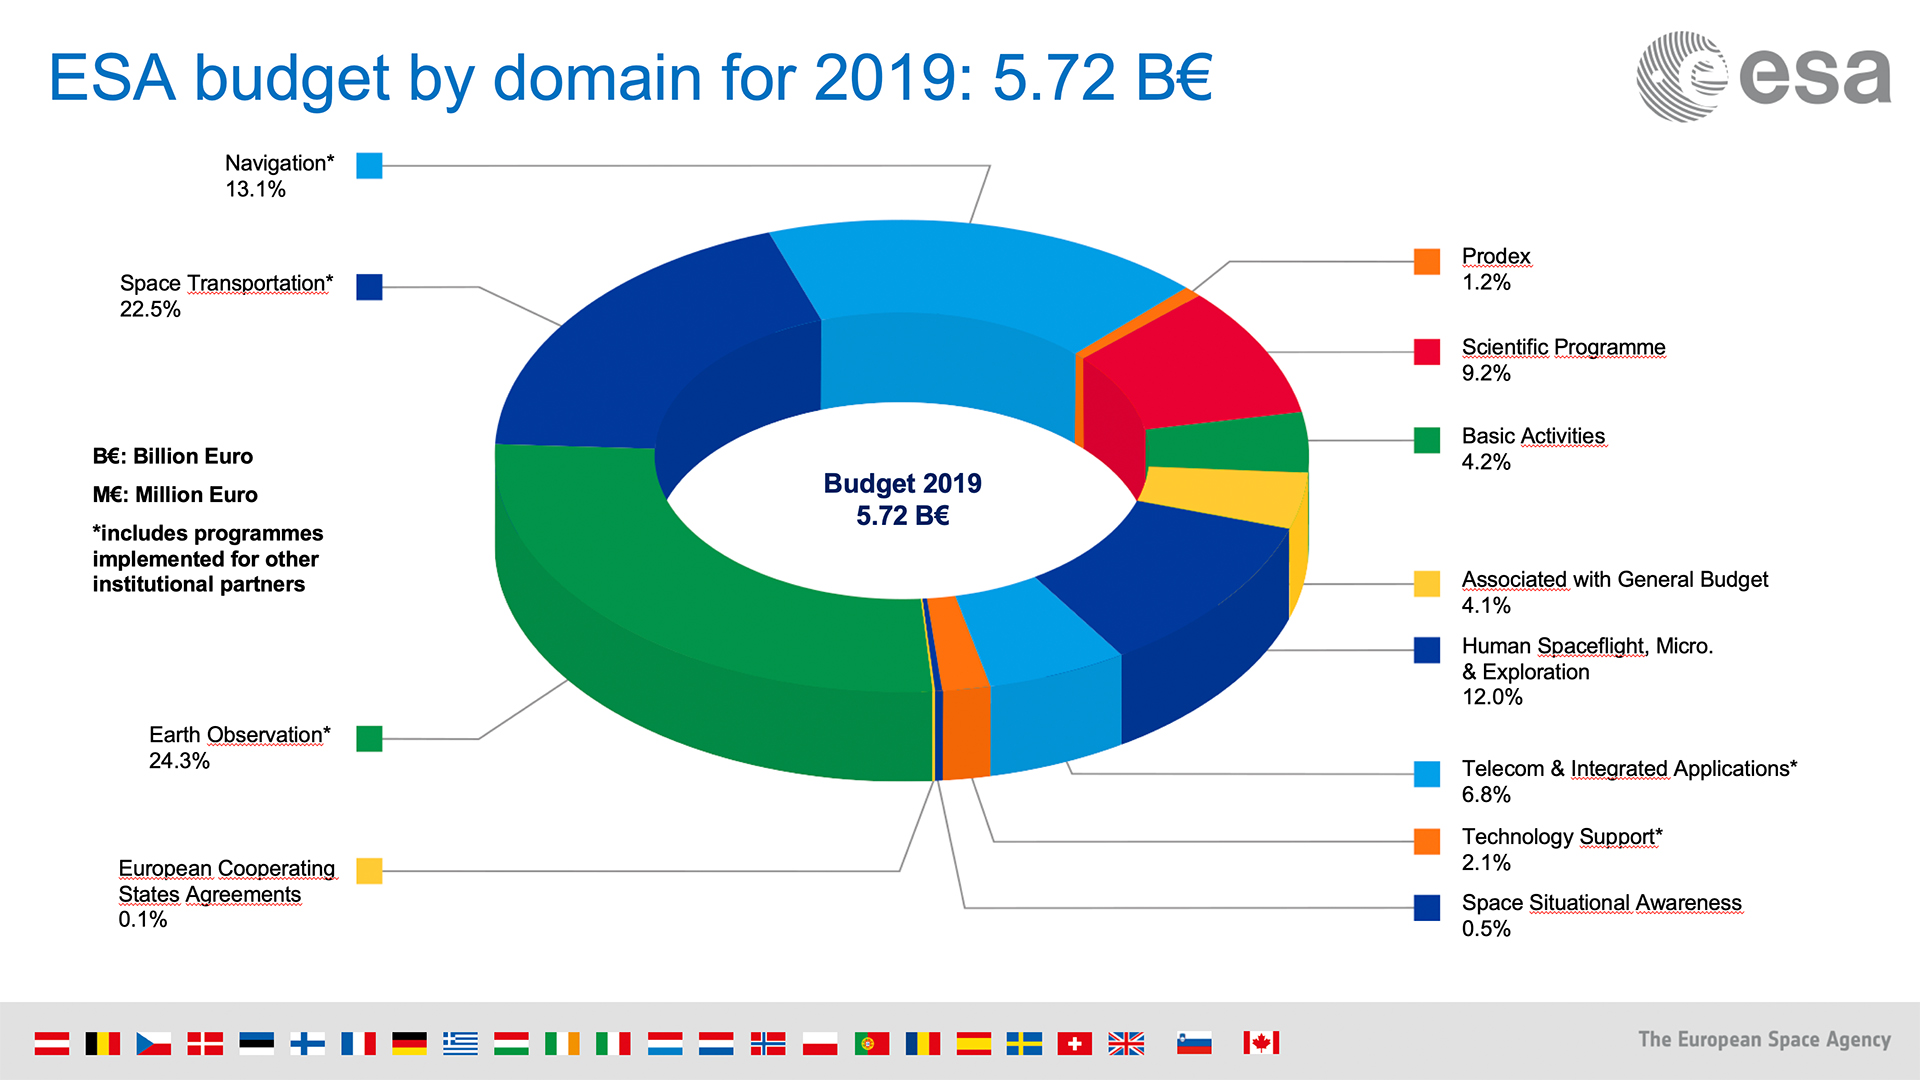 ESA_Budget_by_domain_2019